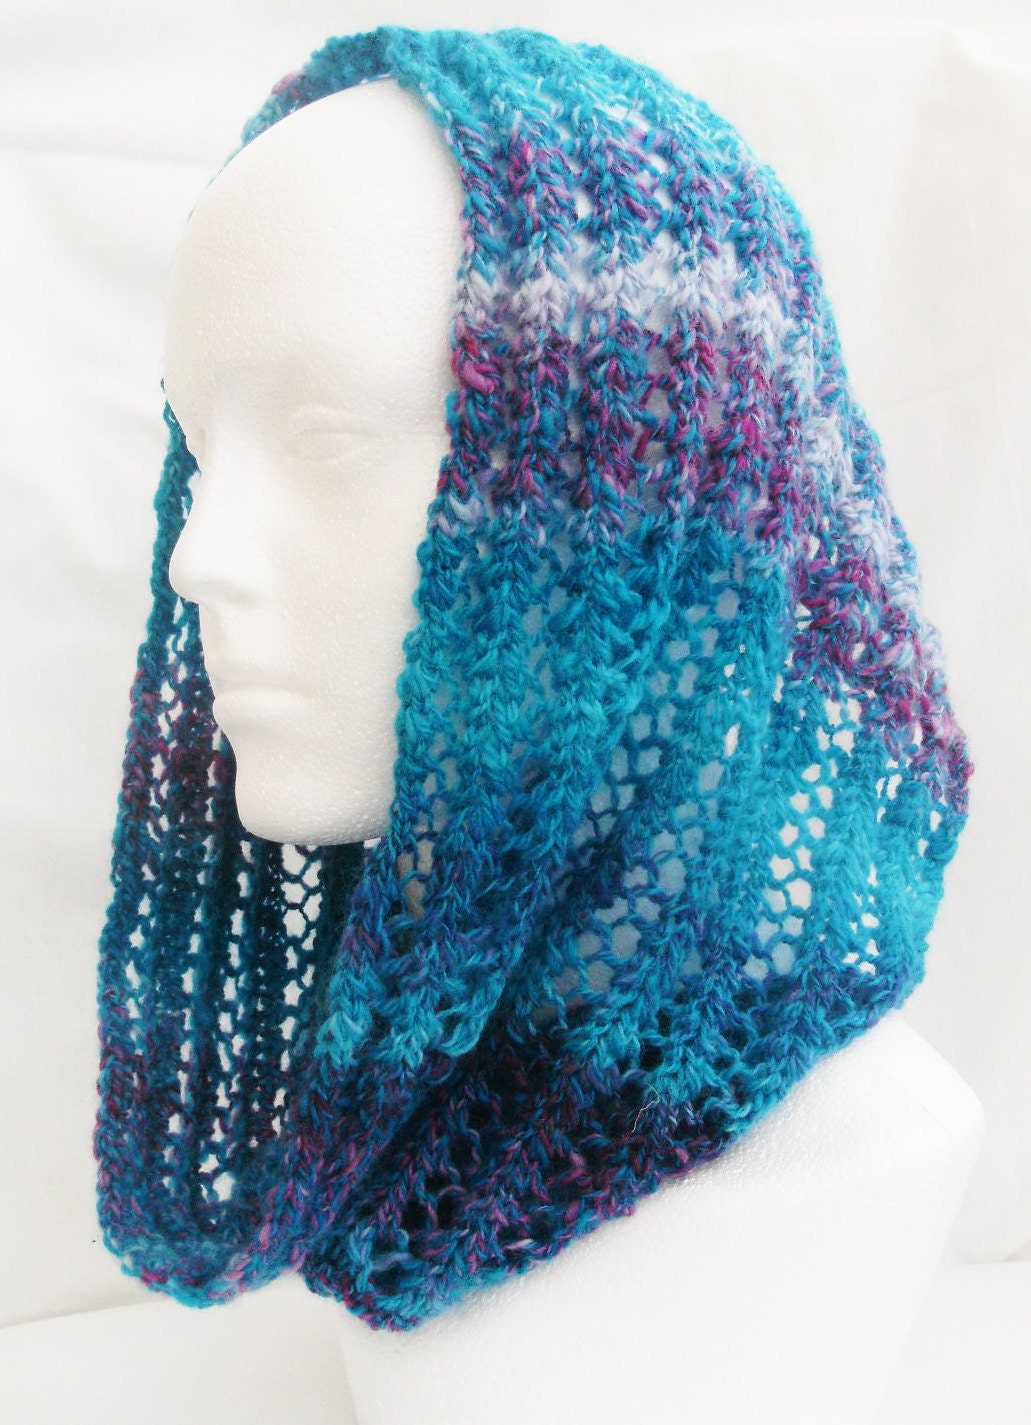 Find great deals on eBay for Snood Scarf in Latest Scarves and Wraps for Women. Shop with confidence.